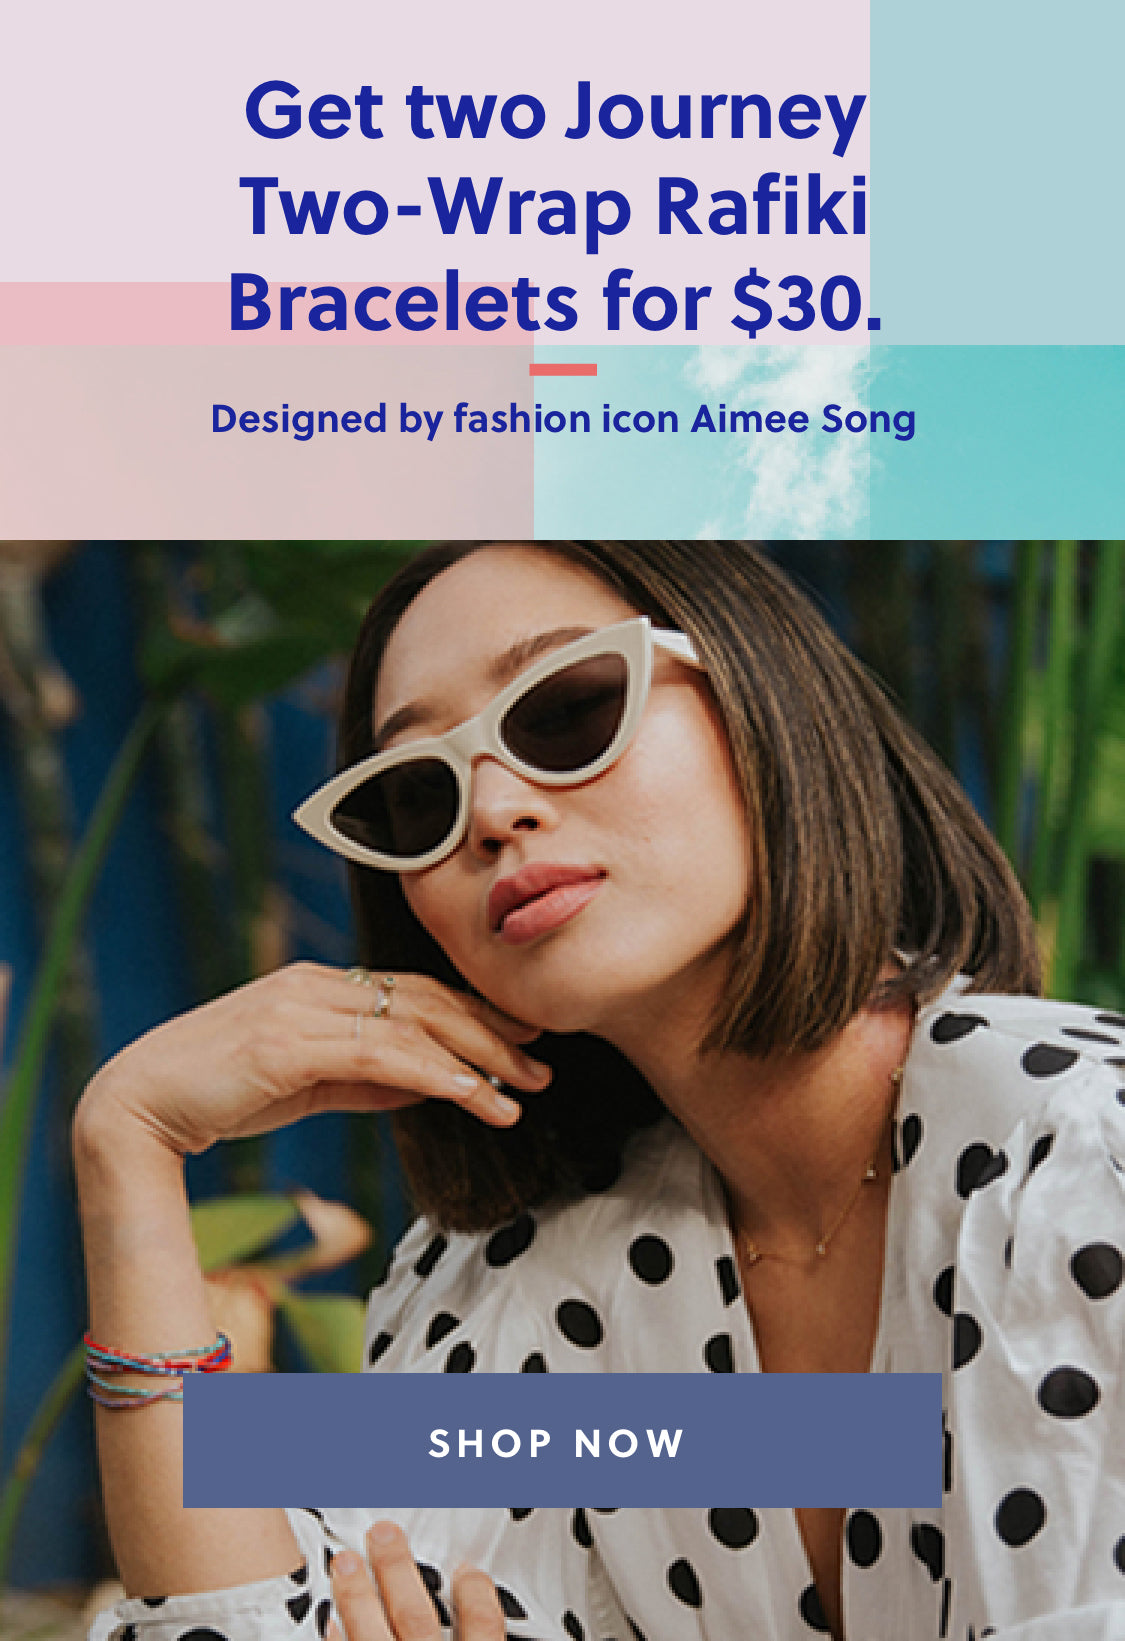 Get two Journey Two-wrap Rafiki Bracelets for $30. | Designed by fashion icon Aimee Song | Shop Now